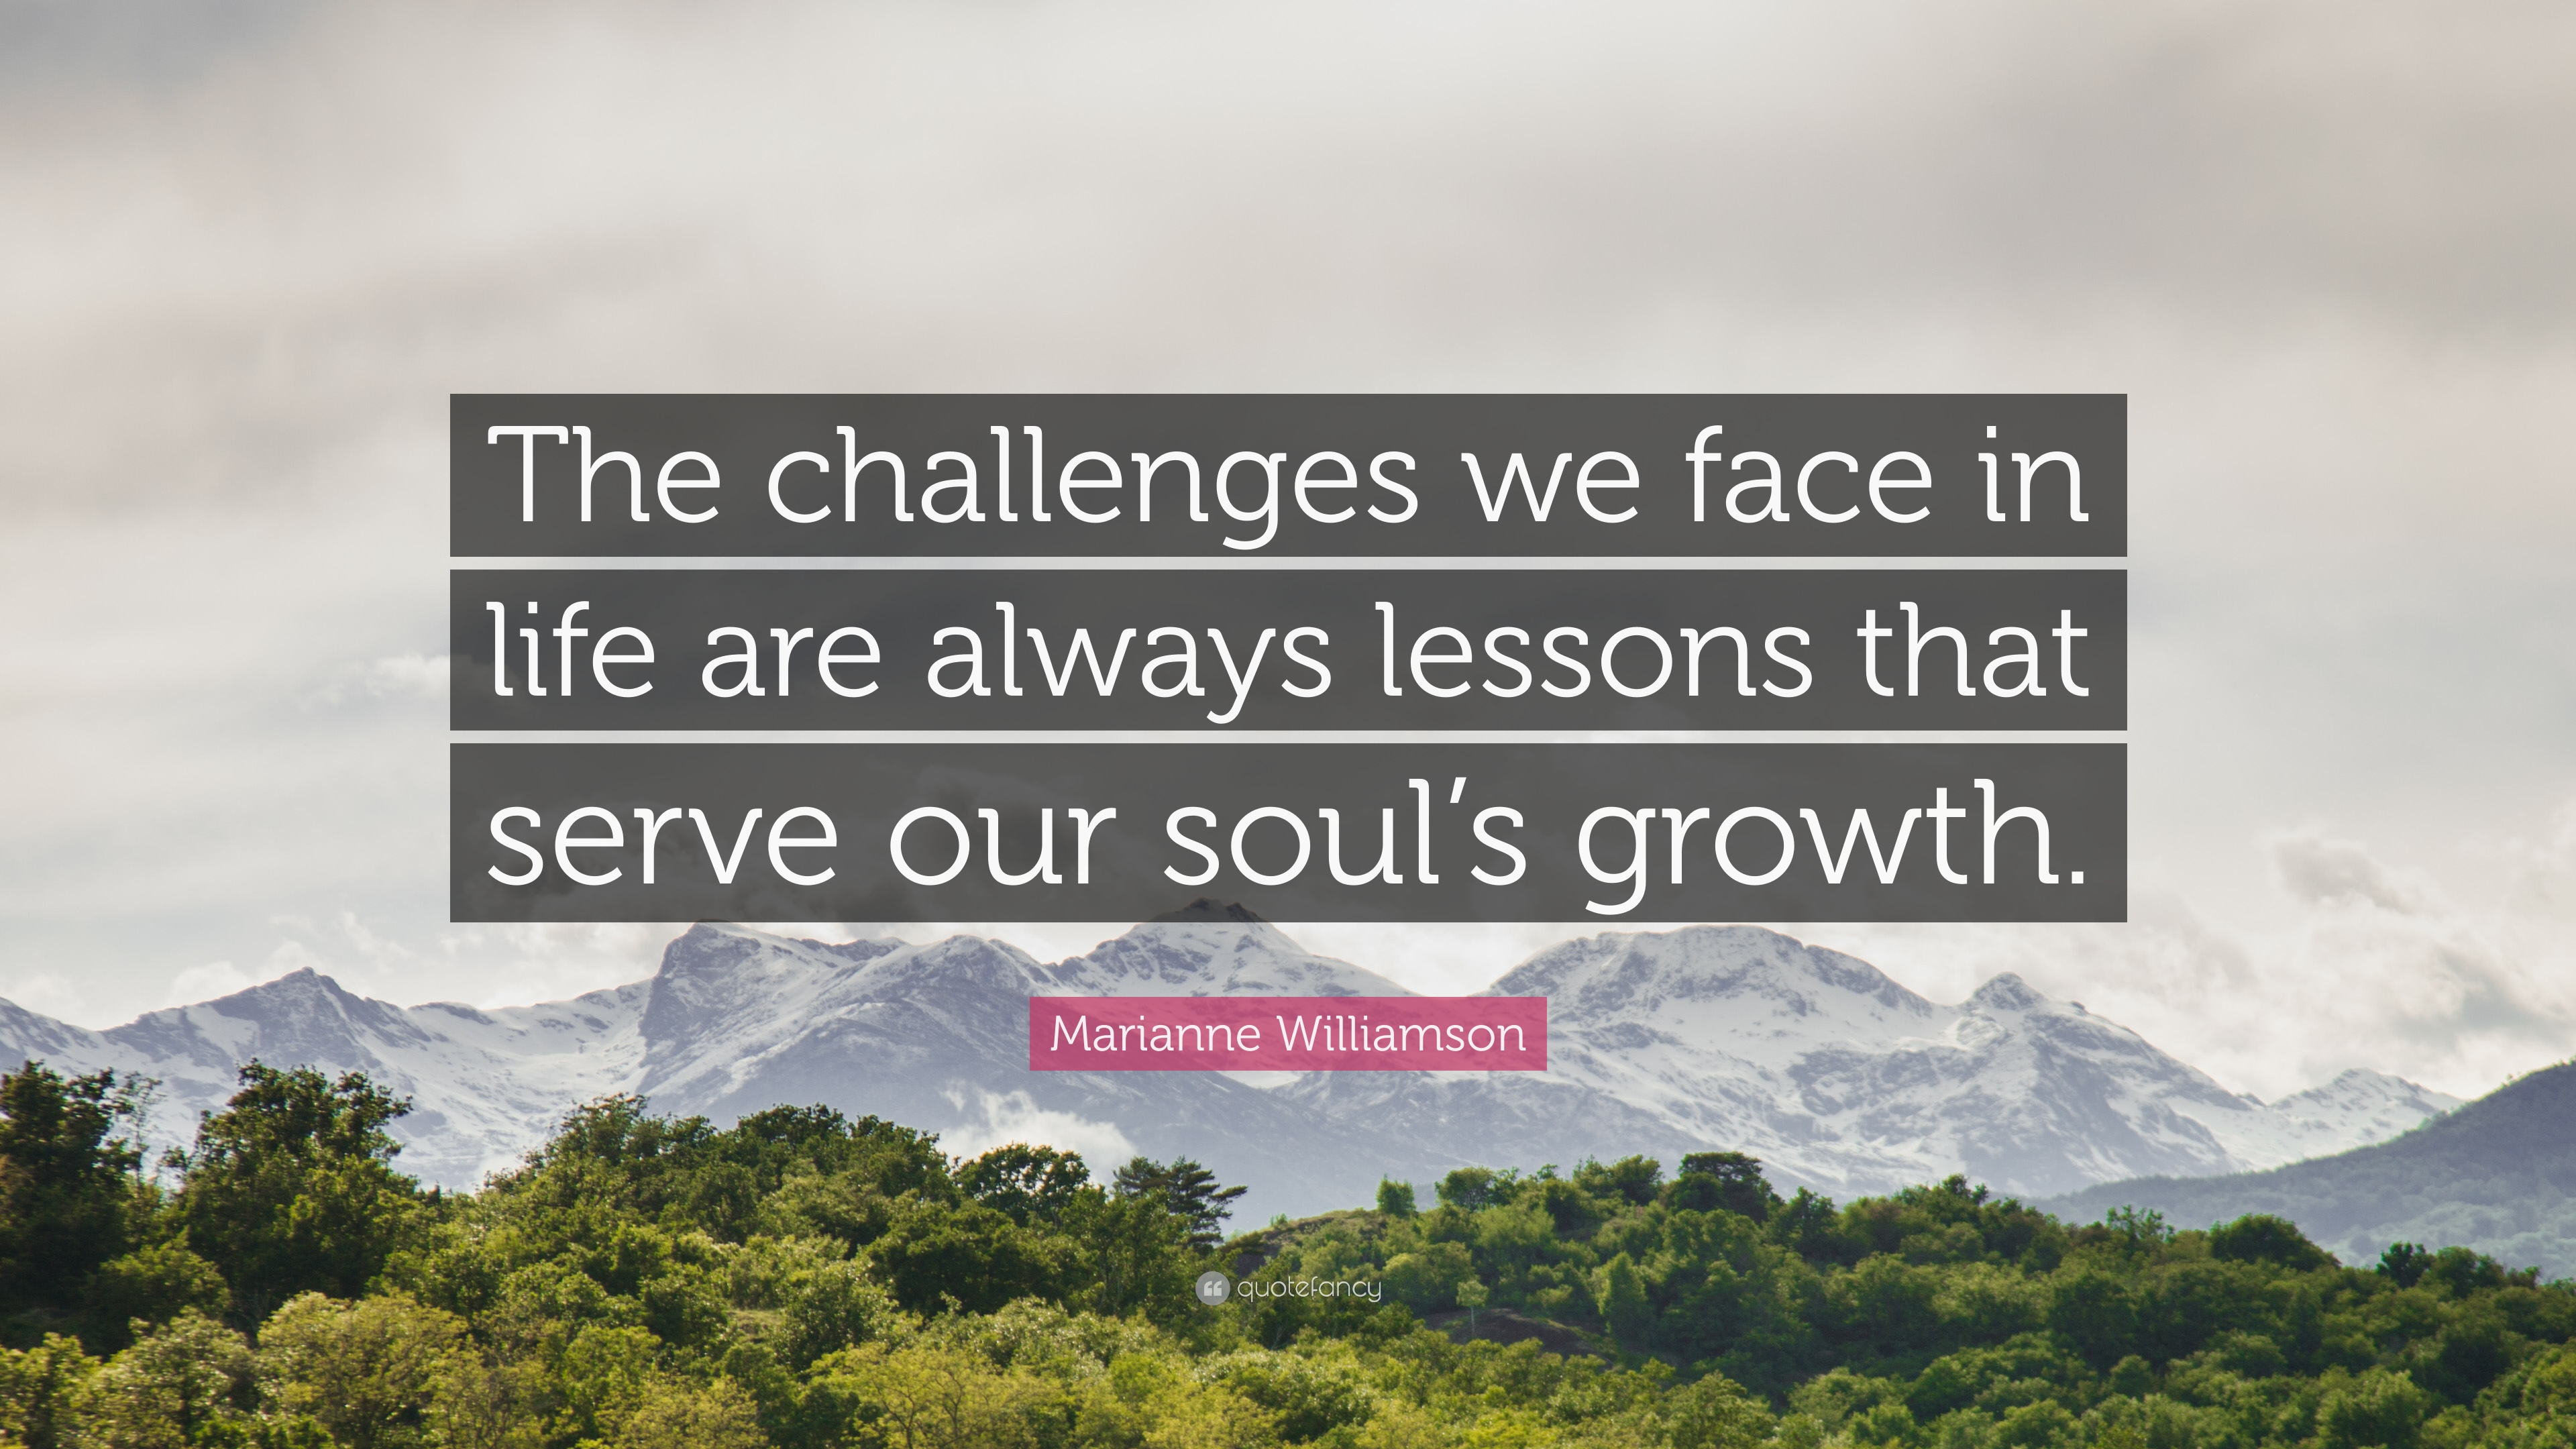 Quotes About Challenges Amusing Challenges Quotes 40 Wallpapers  Quotefancy